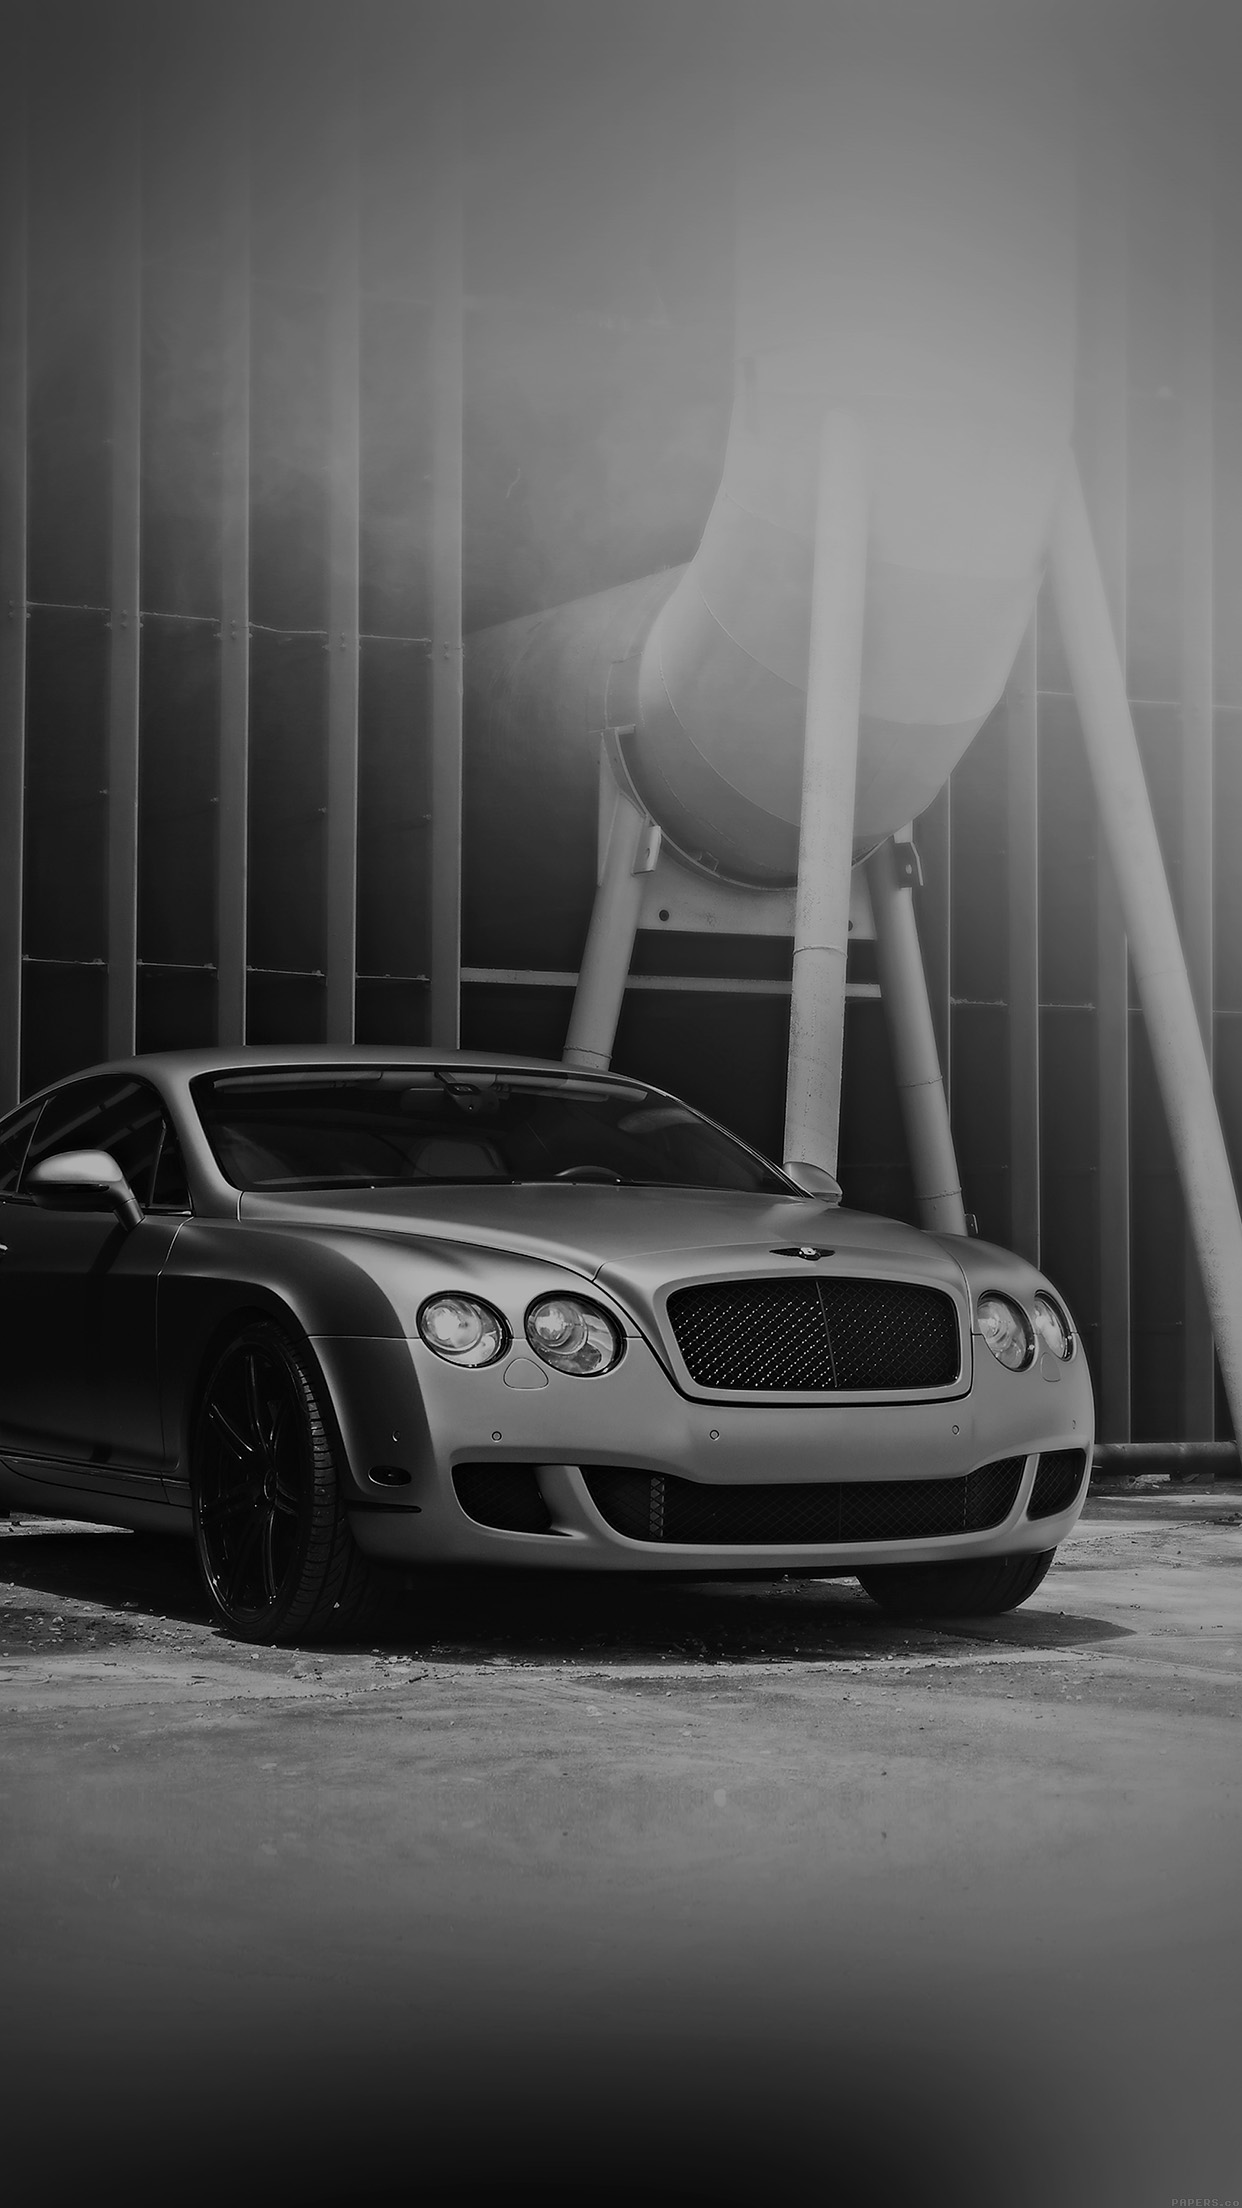 Iphone6papers Com Iphone 6 Wallpaper Aj64 Bentley Motors Bw Dark